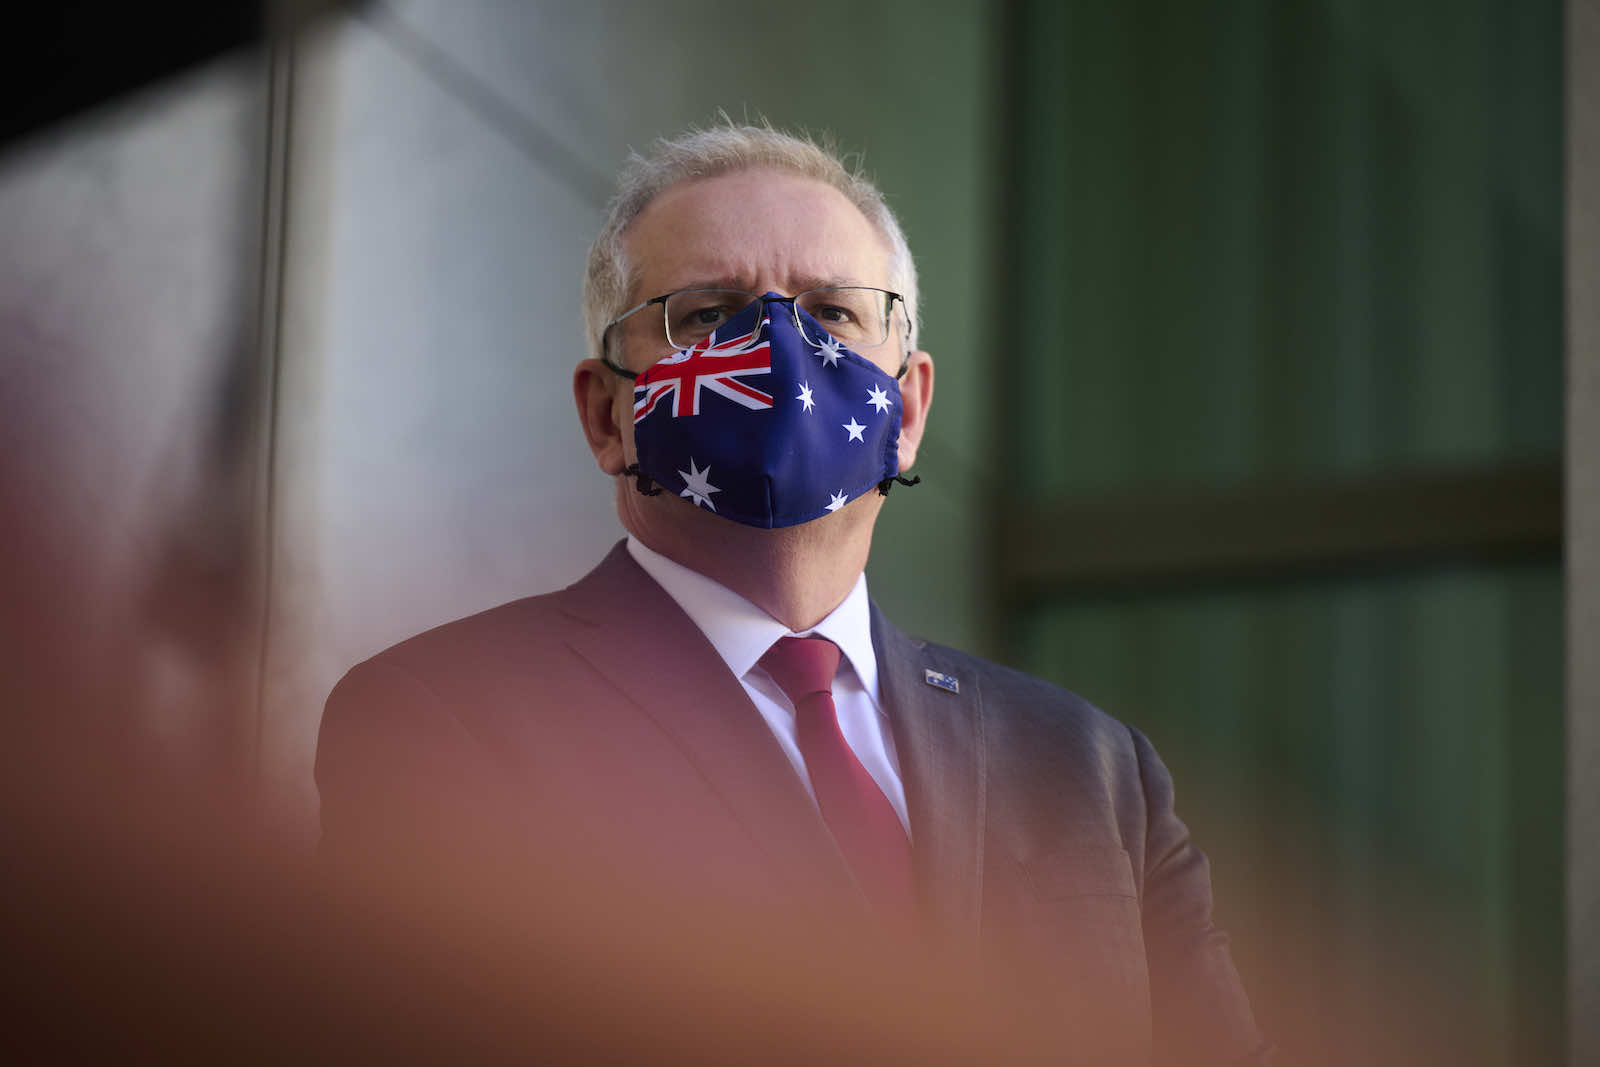 Prime Minister Scott Morrison at a media conference to discuss the airlift evacuation from Kabul (Rohan Thomson/Getty Images)